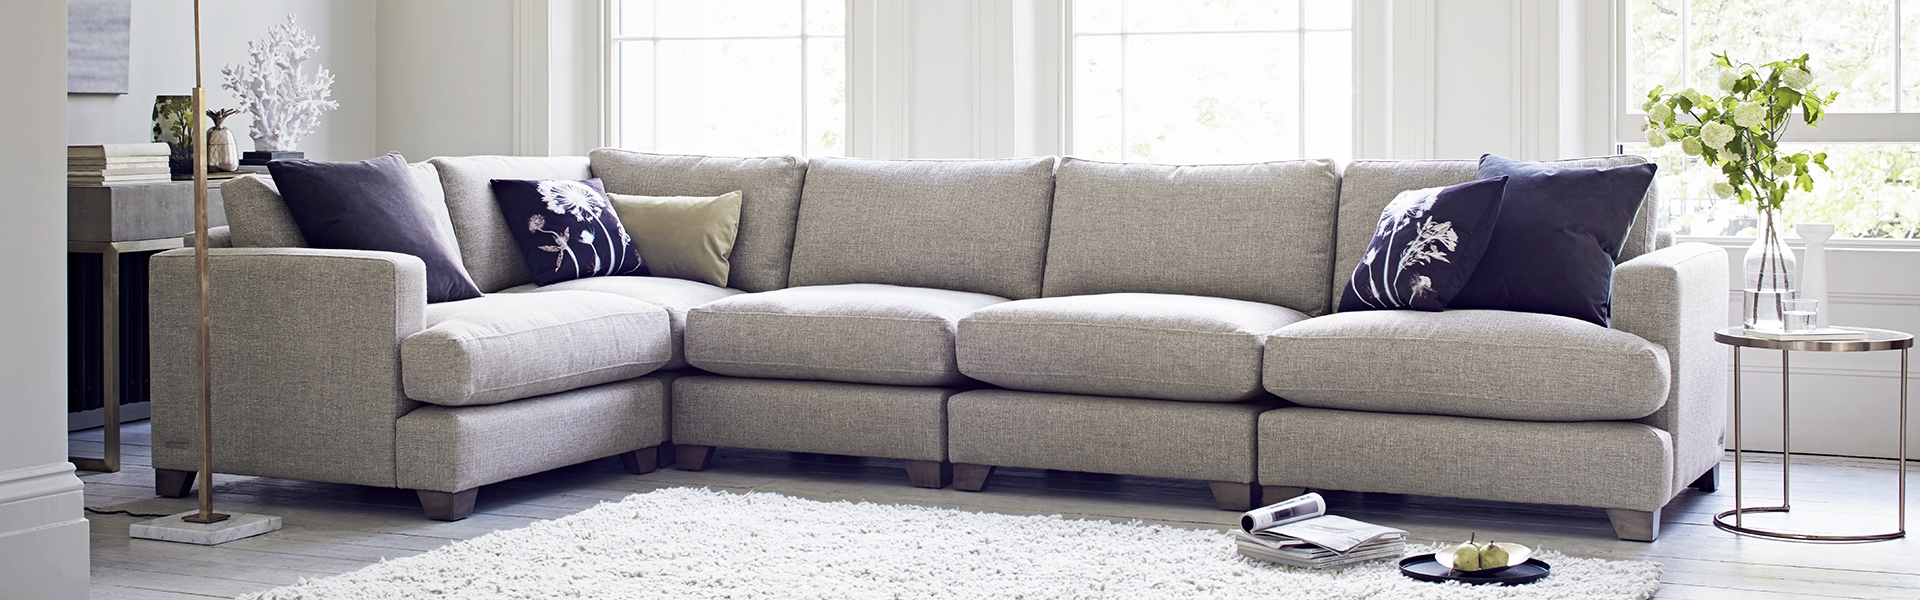 A Sofa Fit For The Family Regarding Family Sofa (Image 1 of 15)